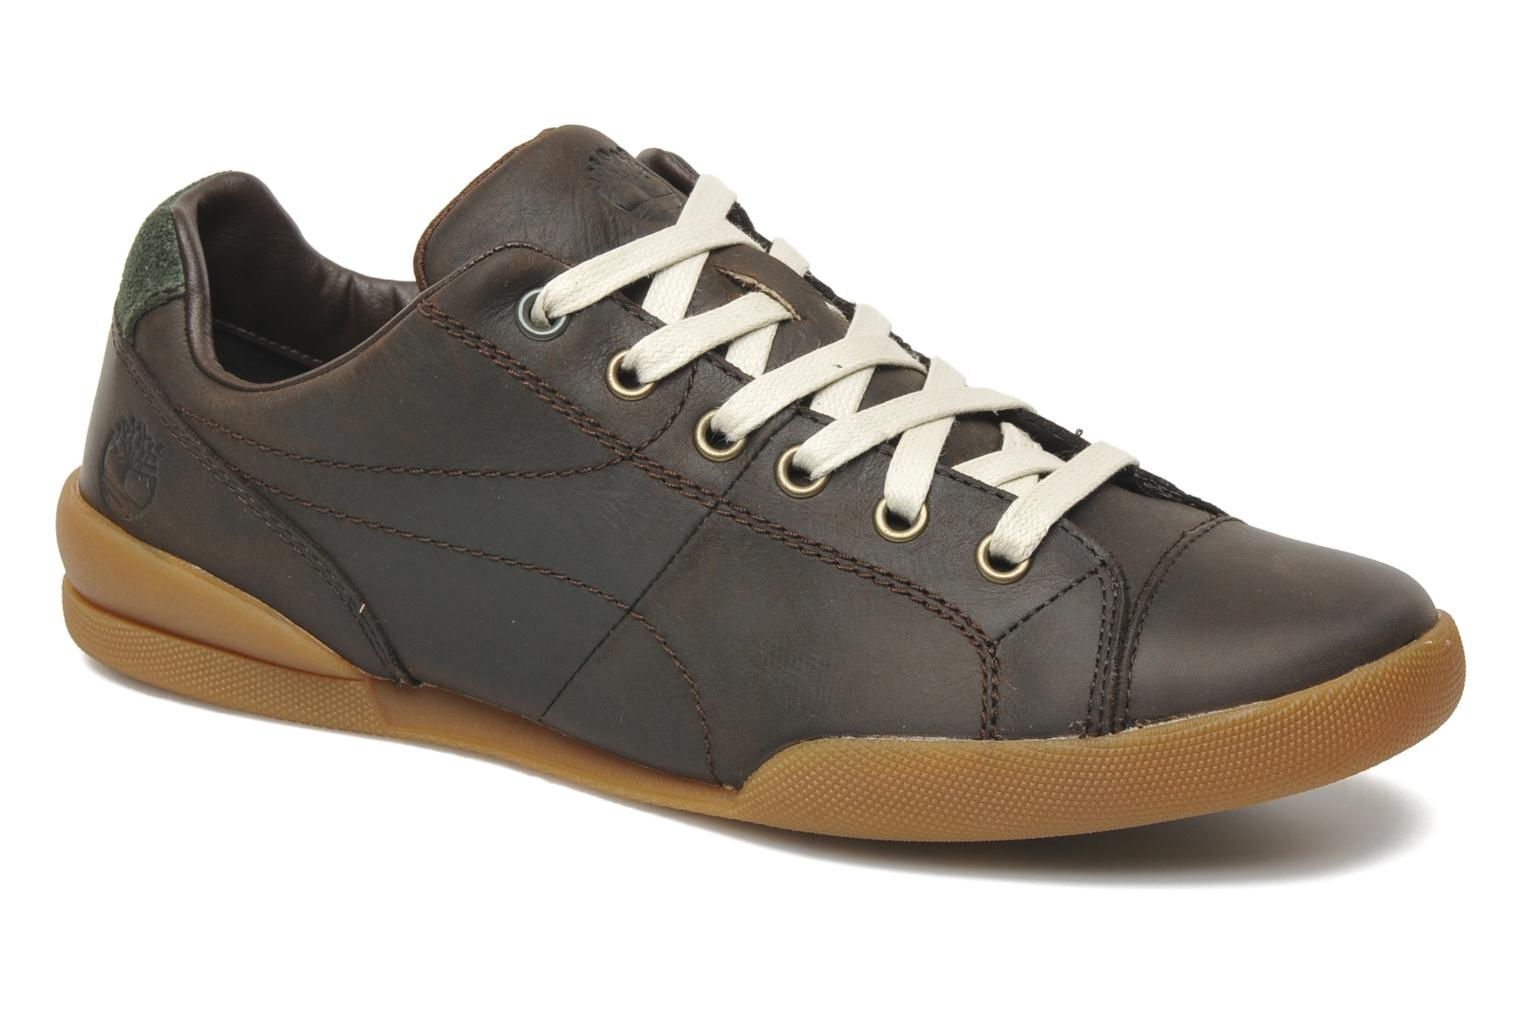 Earthkeepers Splitcup Leather Cap Toe Oxford Dark Brown Oiled